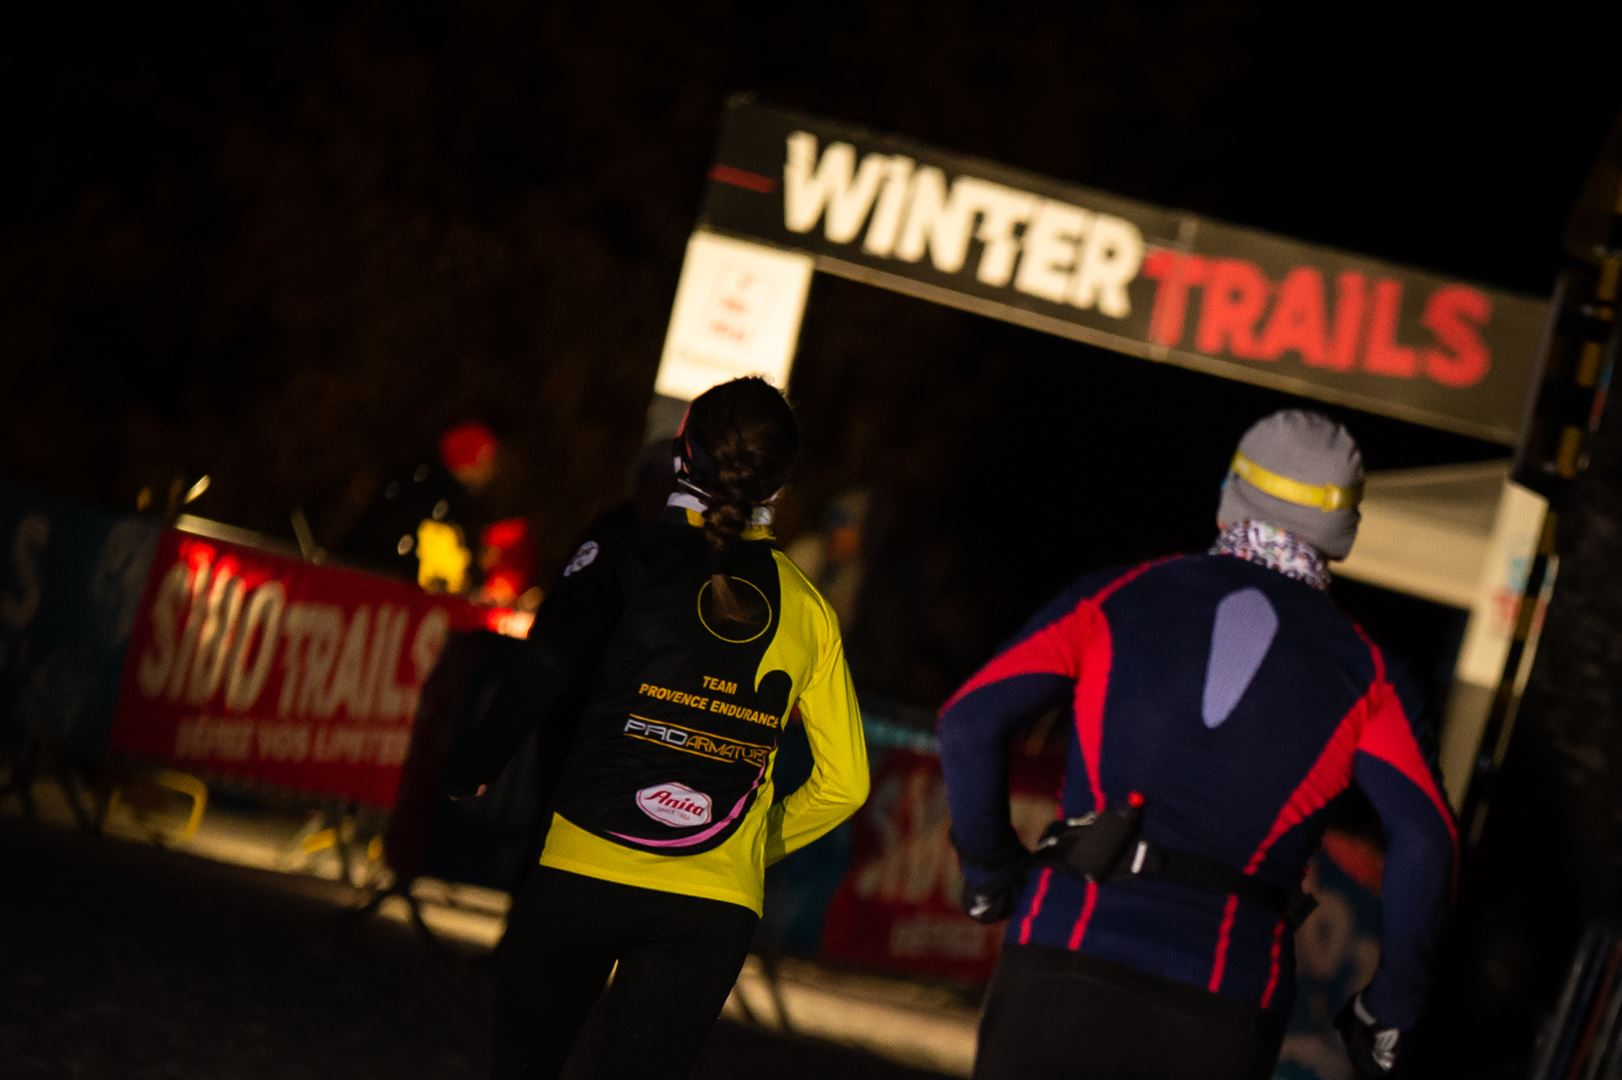 winter sibo trail 2020 HD aufildeslumieres 0021 - RESULTATS ET PHOTOS DU WINTER SIBOTRAIL LANS EN VERCORS (07/03/2020)